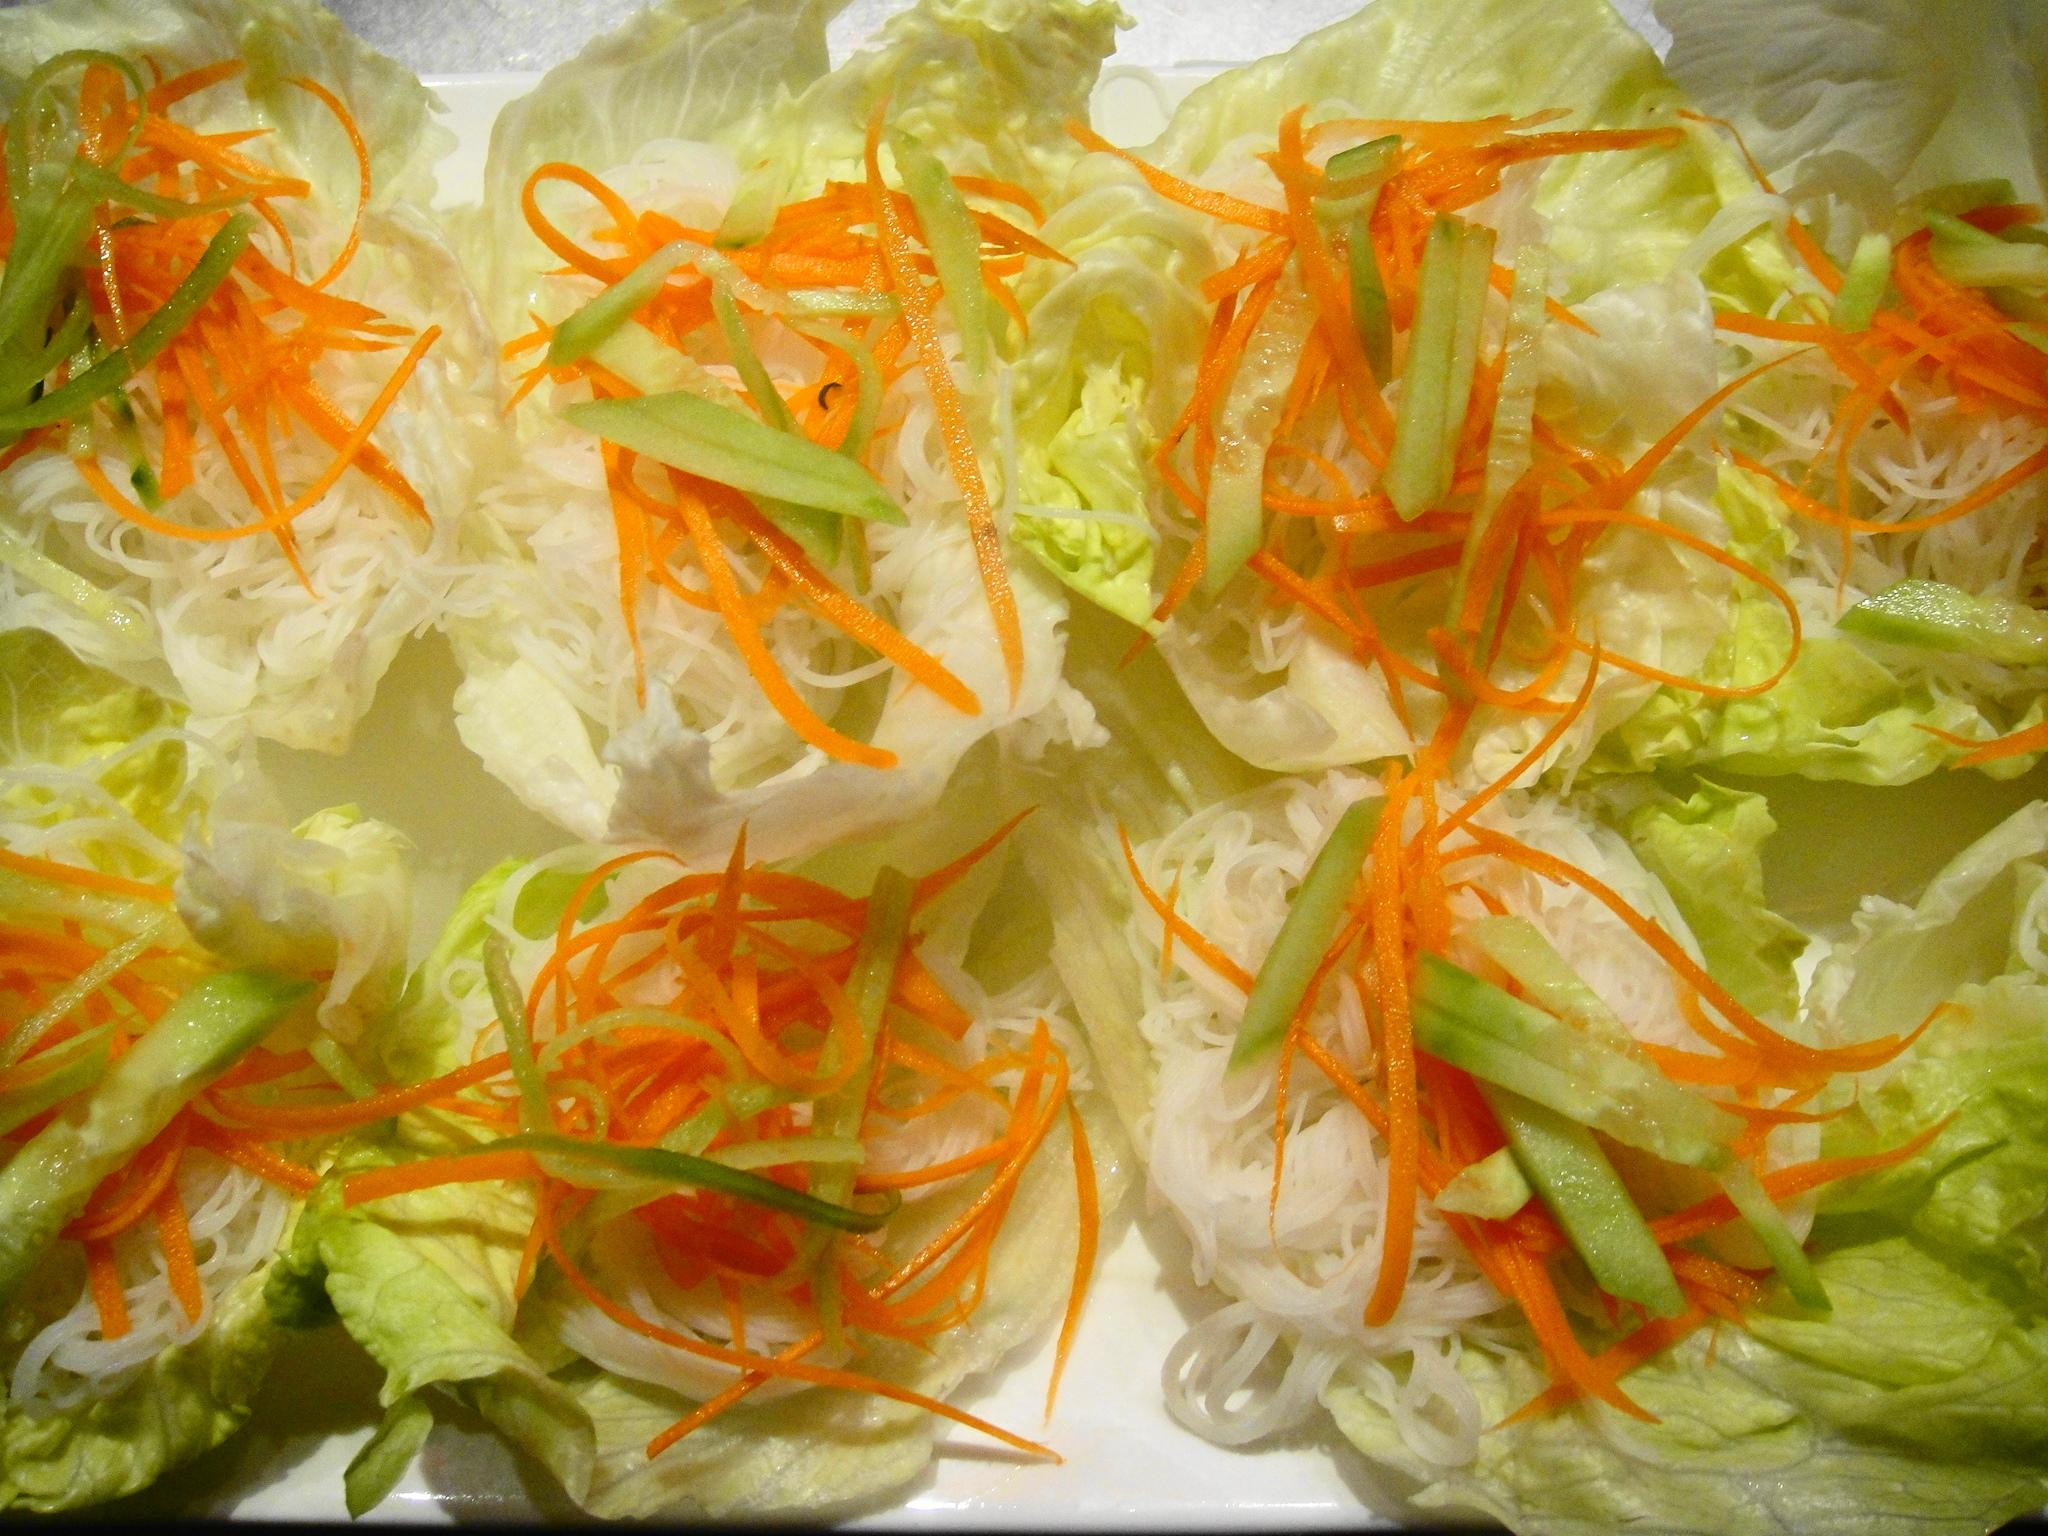 lettuce wraps with carrots